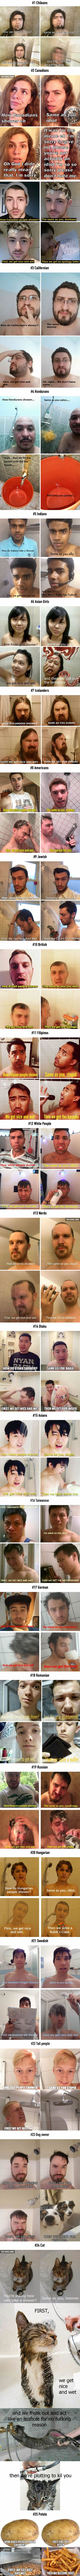 25 Ridiculously stereotypical memes reveal how different people take showers